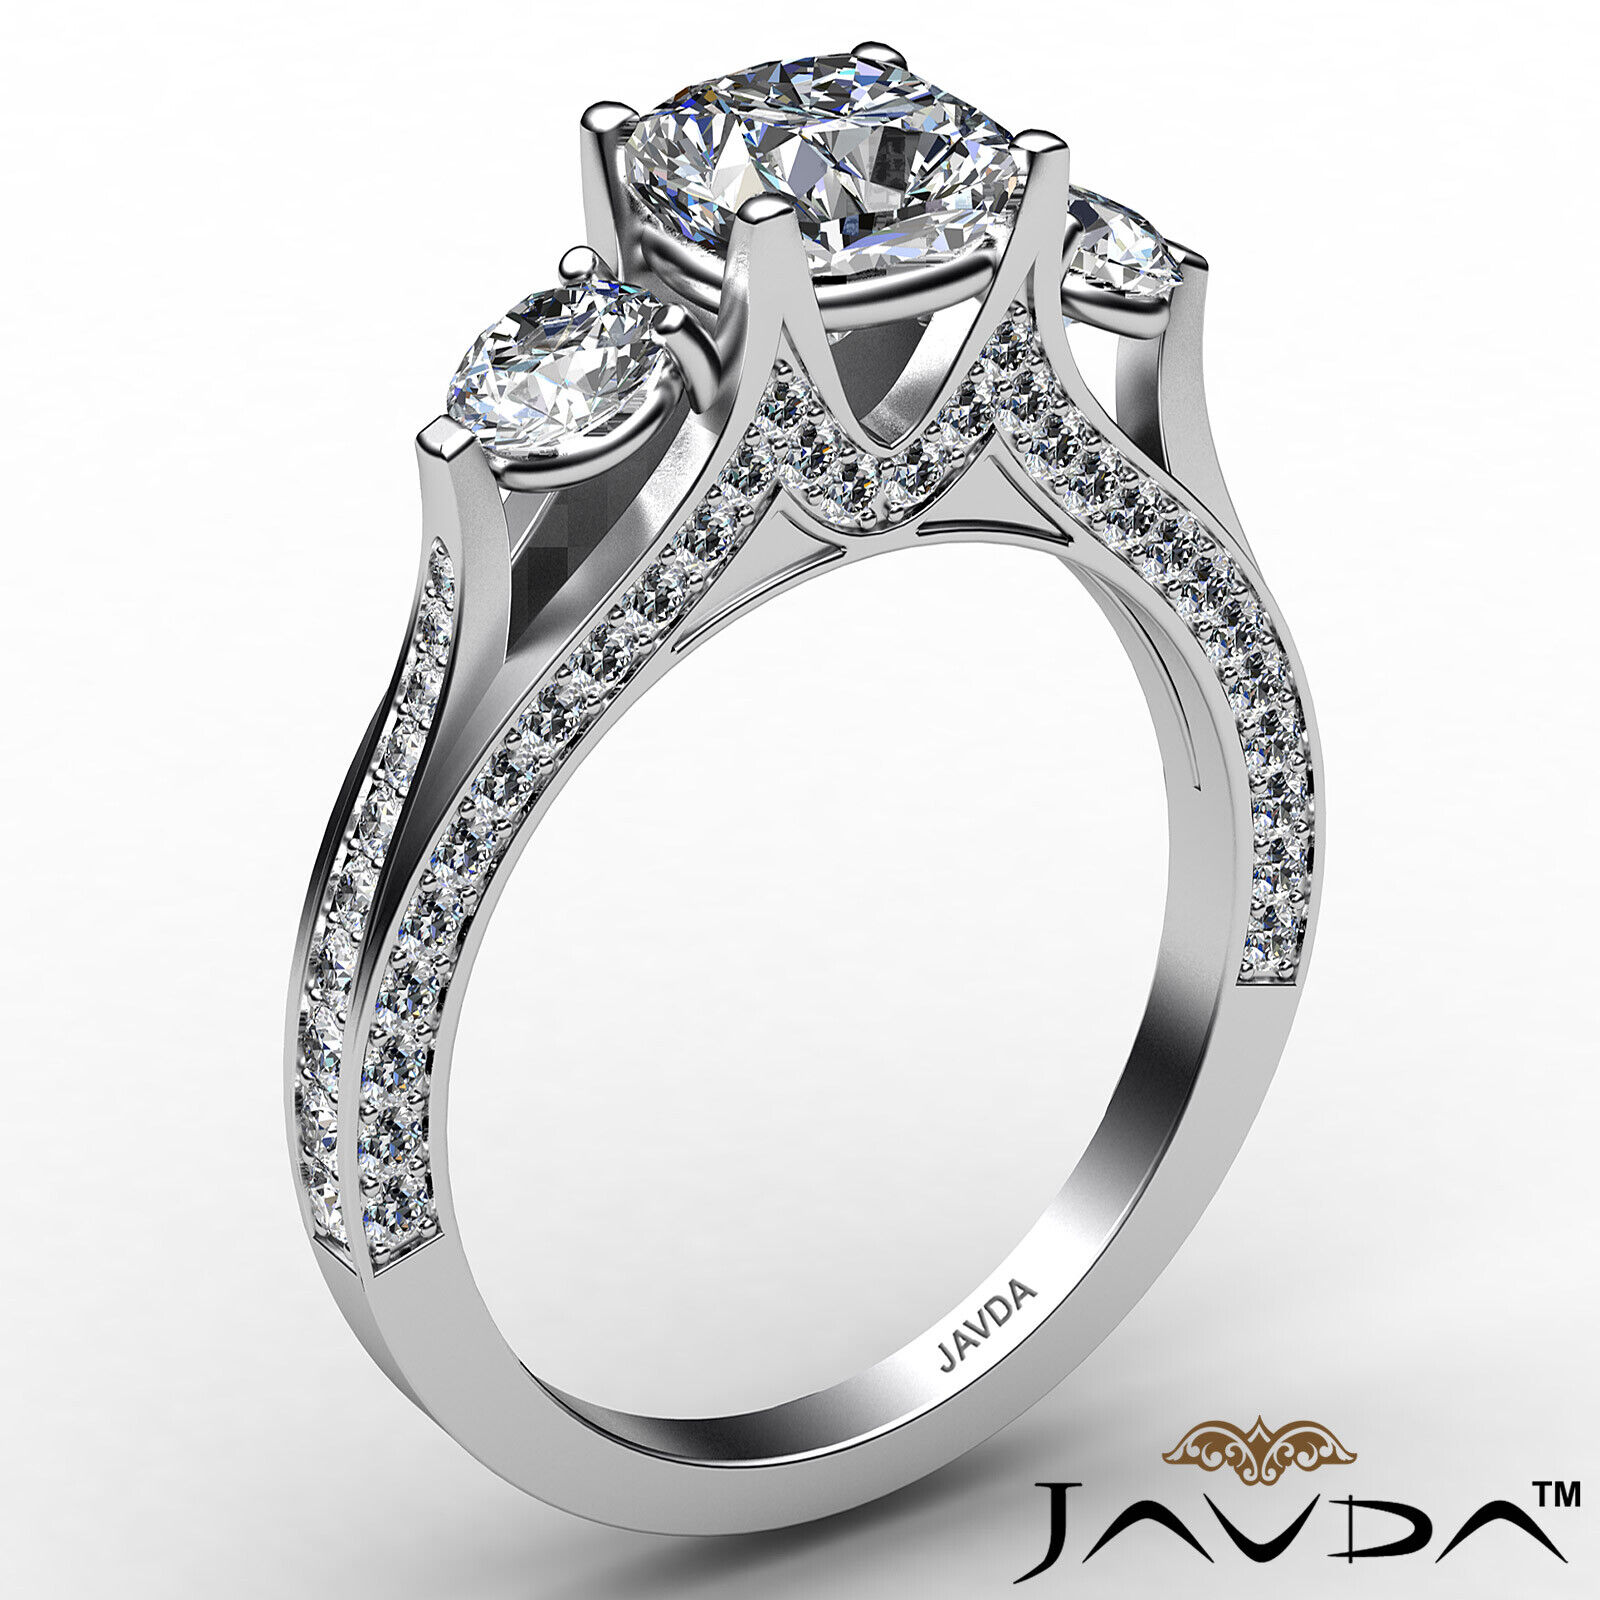 Cushion Diamond Engagement Ring Certified by GIA E Color & VVS1 clarity 2.1 ctw 3